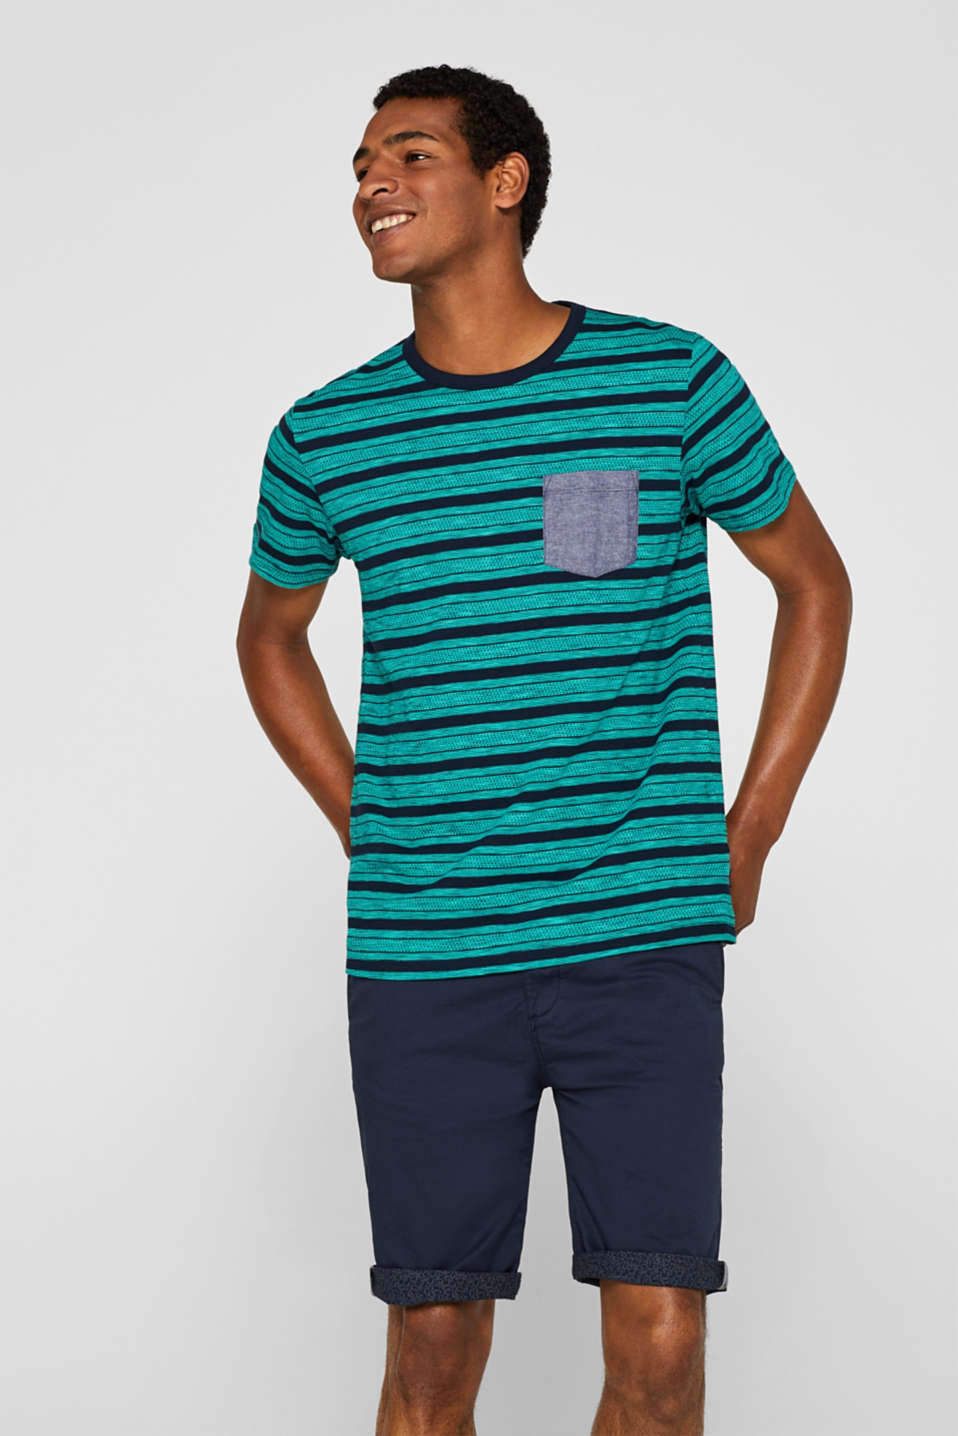 Esprit - Jersey T-shirt with tribal stripes, 100% cotton